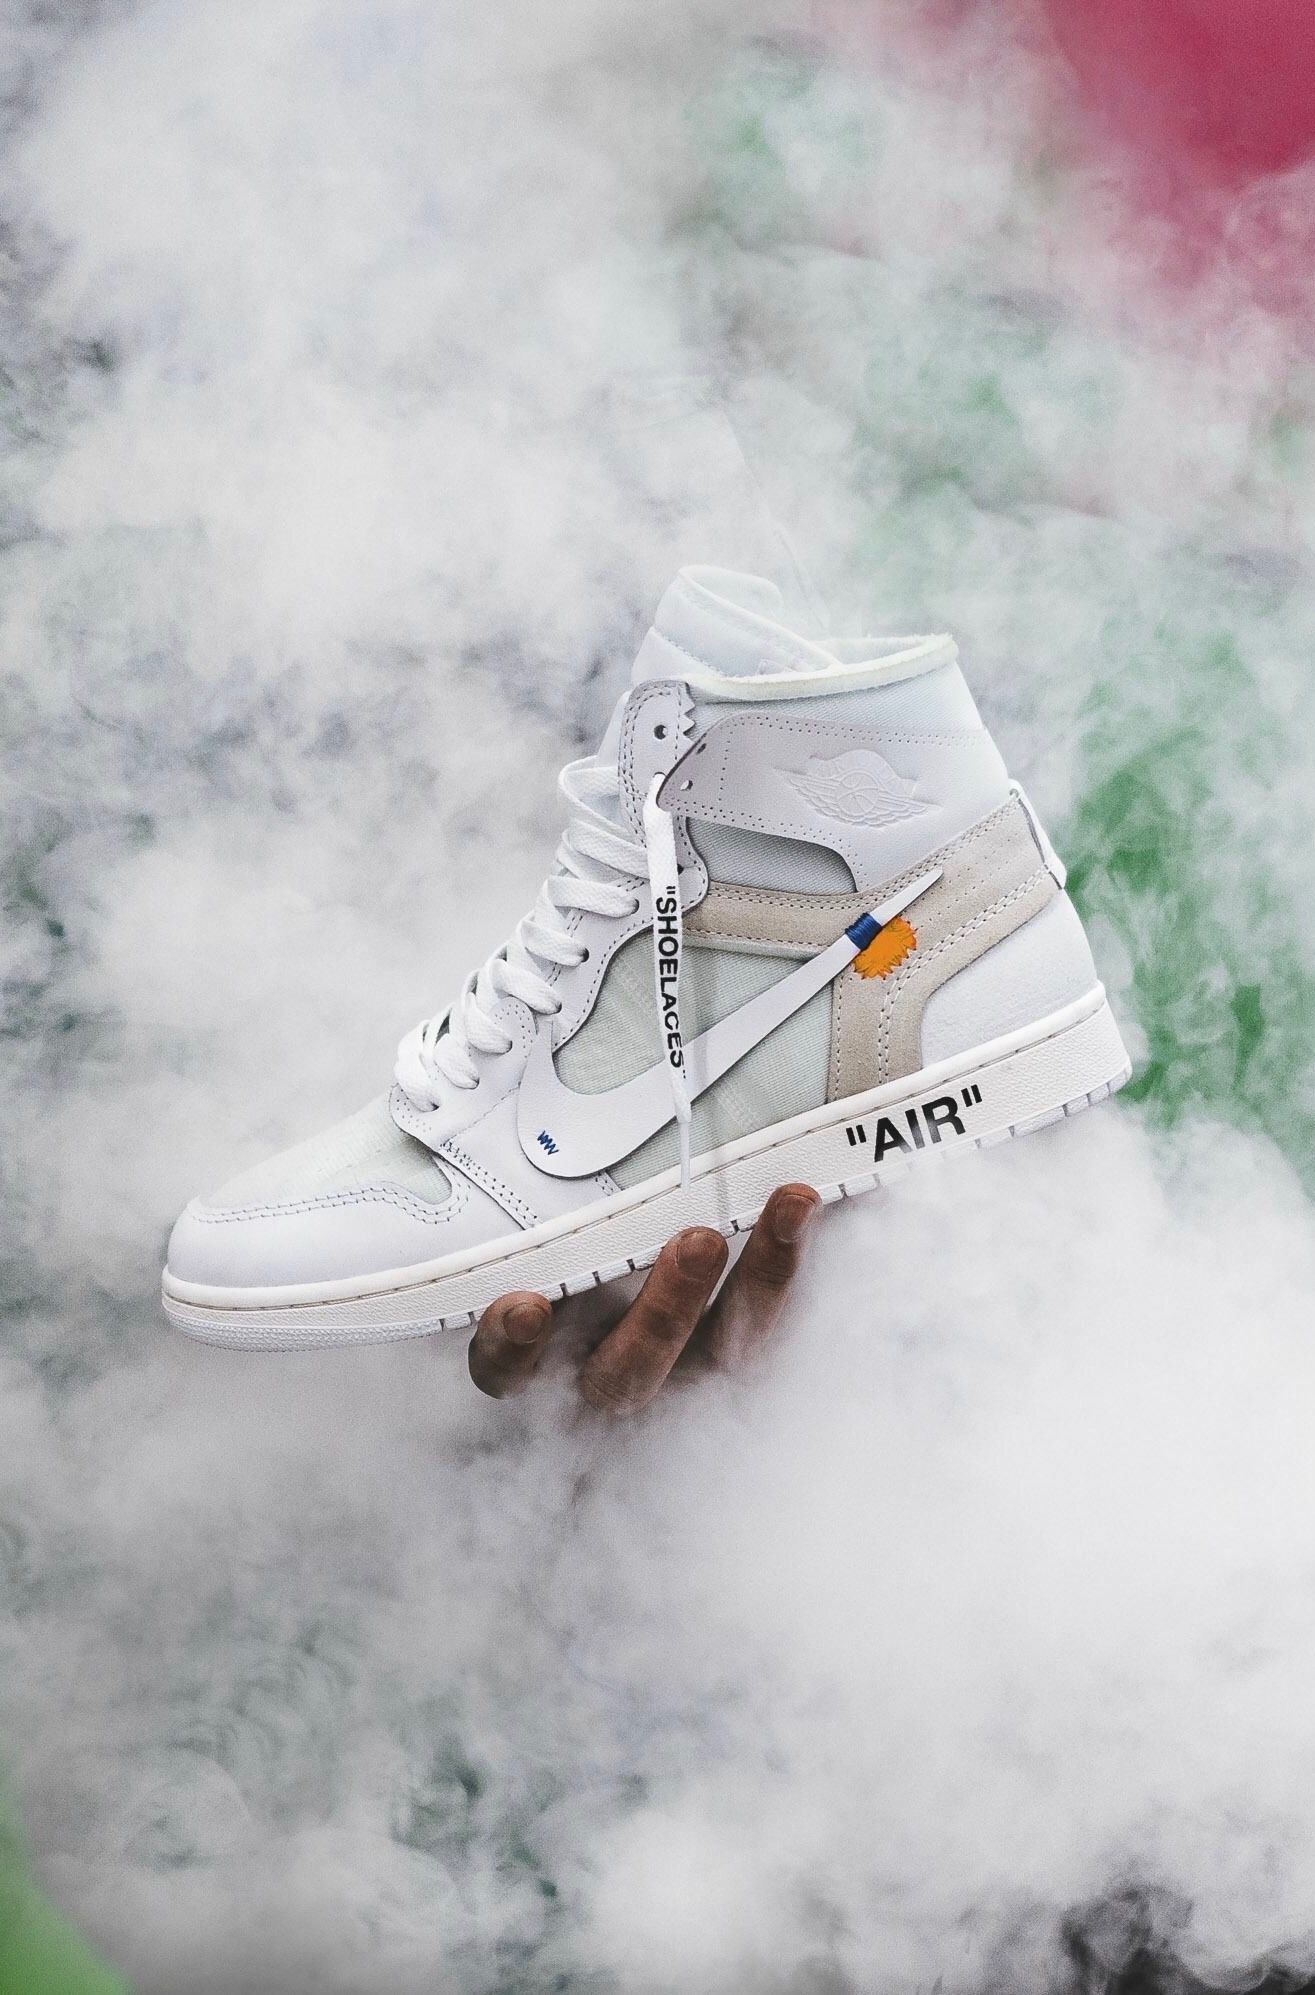 new product f71b4 87468 OFF WHITE x Nike Air Jordan 1 Moda Masculina, Zapatos Lindos, Zapatillas,  Tenis